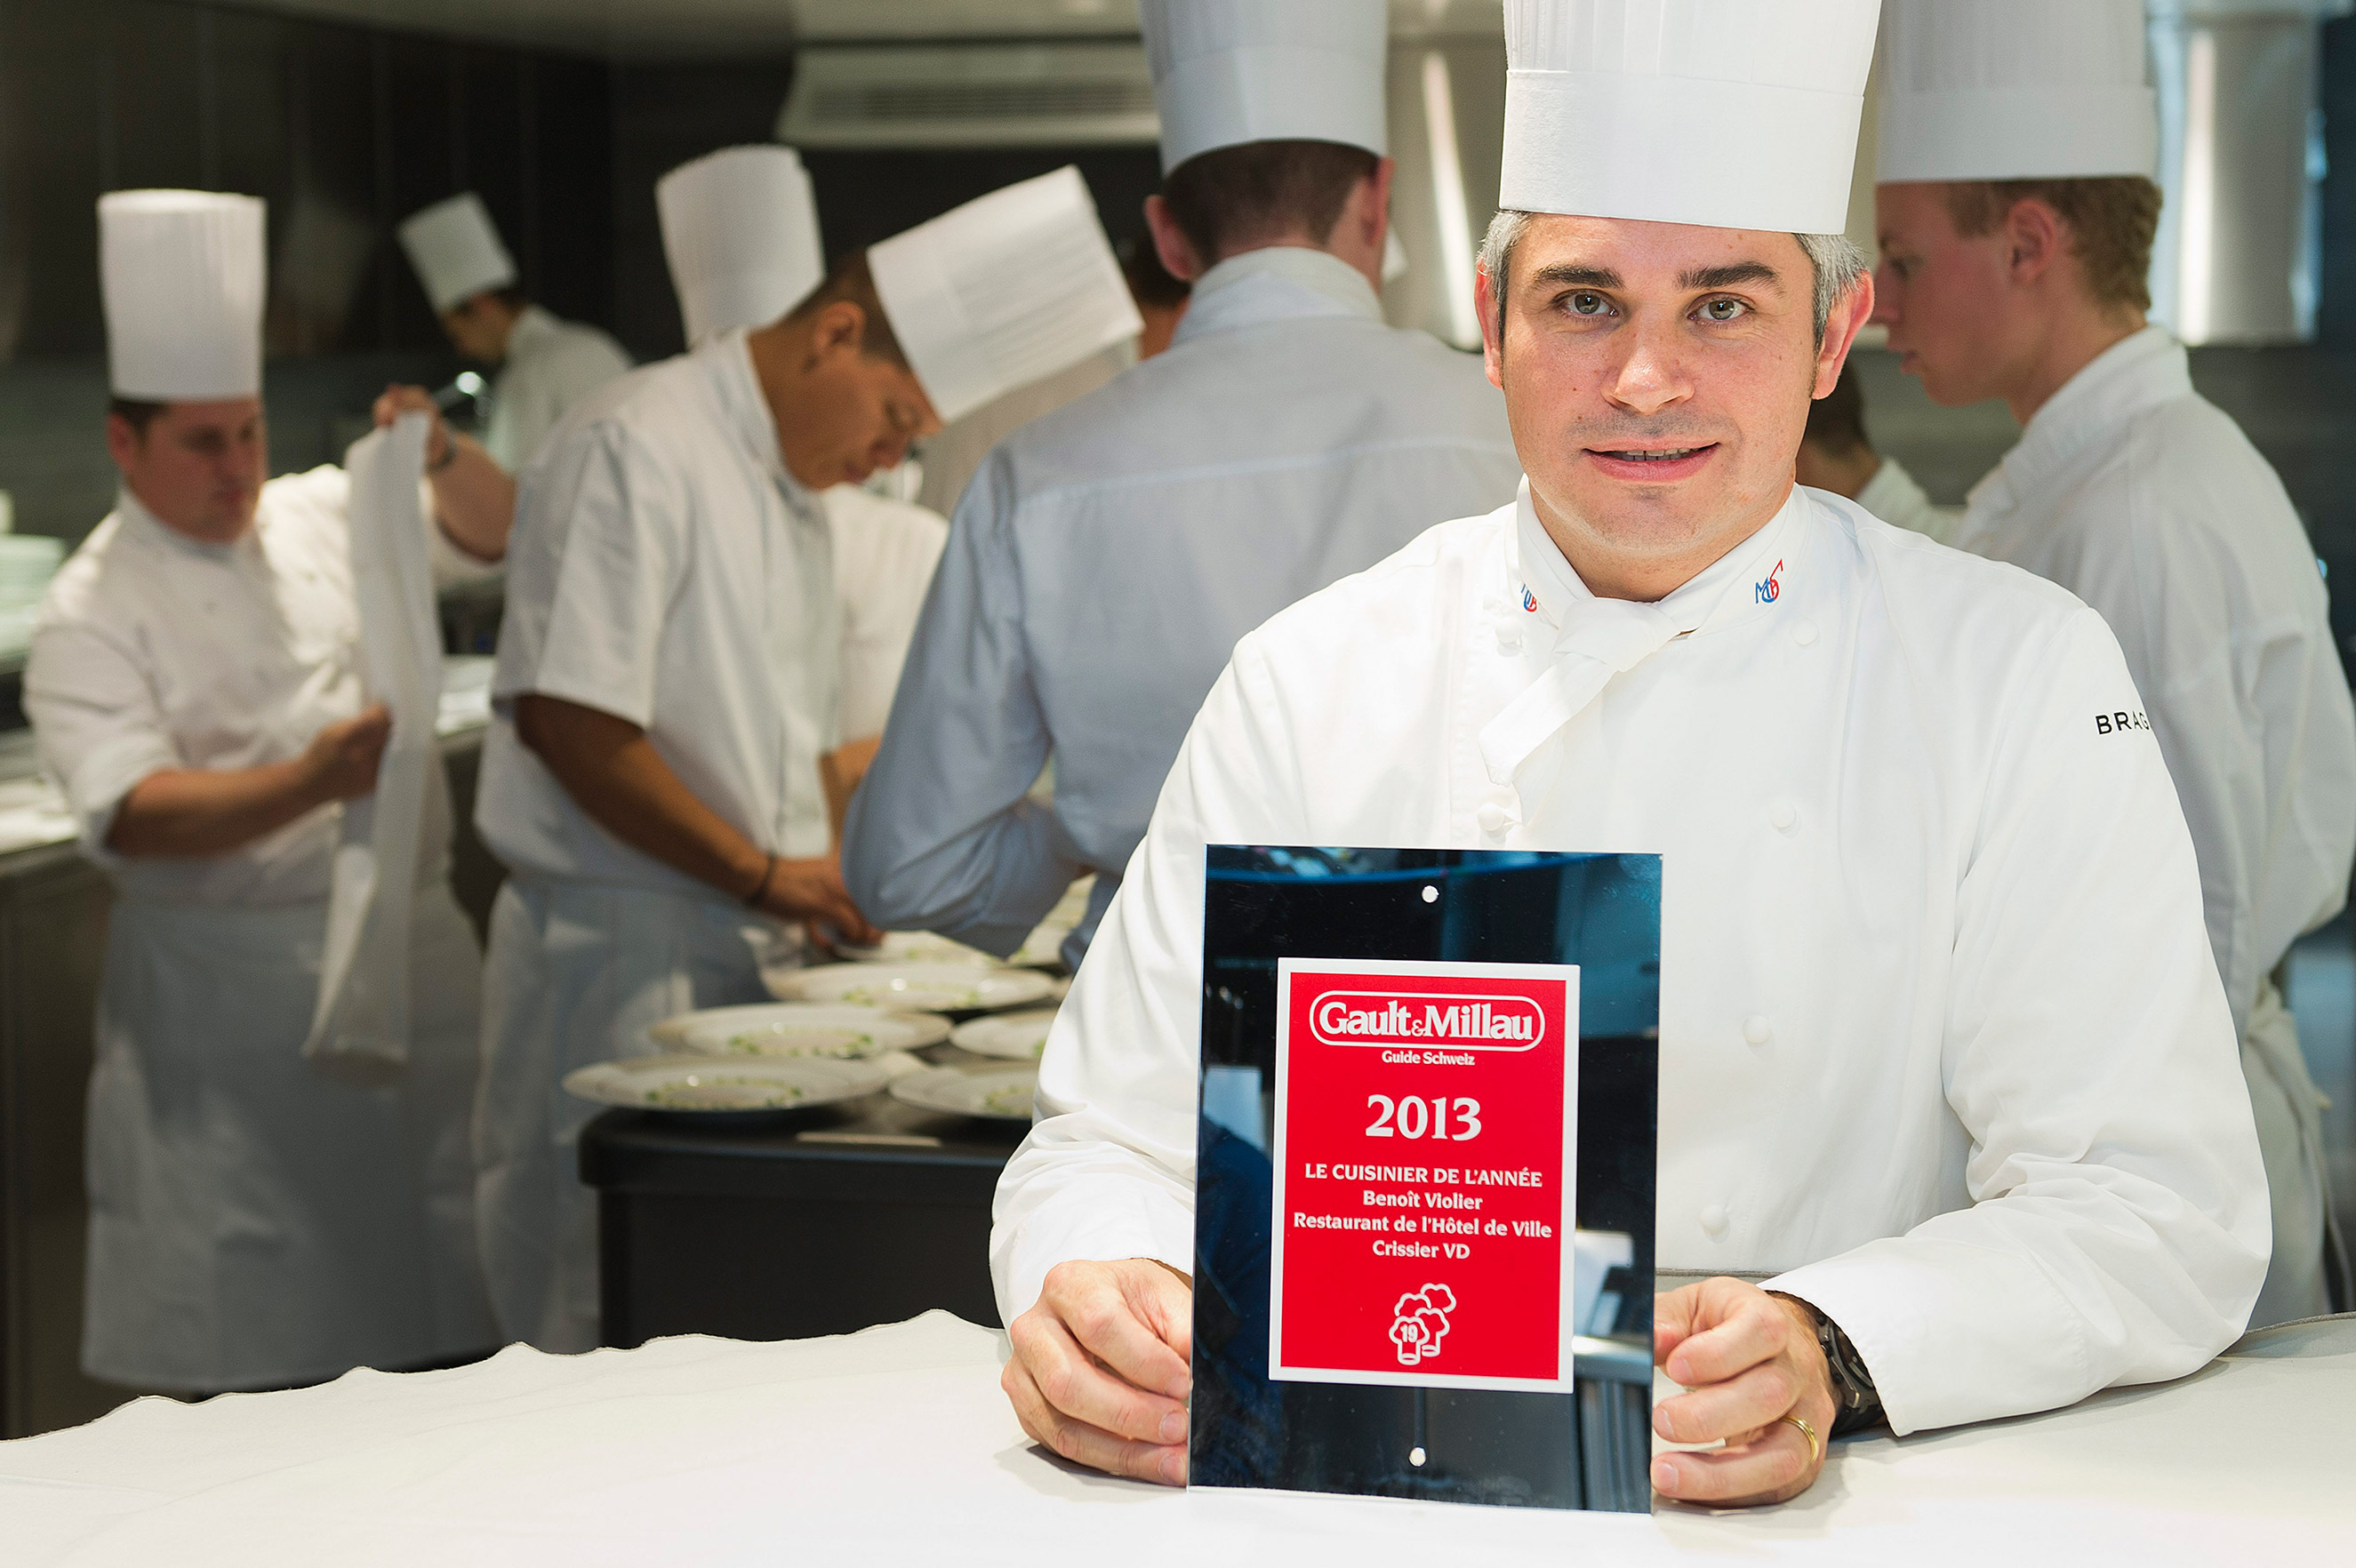 Benoit Violier poses with the certificate as Chef of the Year in his kitchen in the Hotel de Ville in Crissier, Switzerland, Oct. 8, 2012.